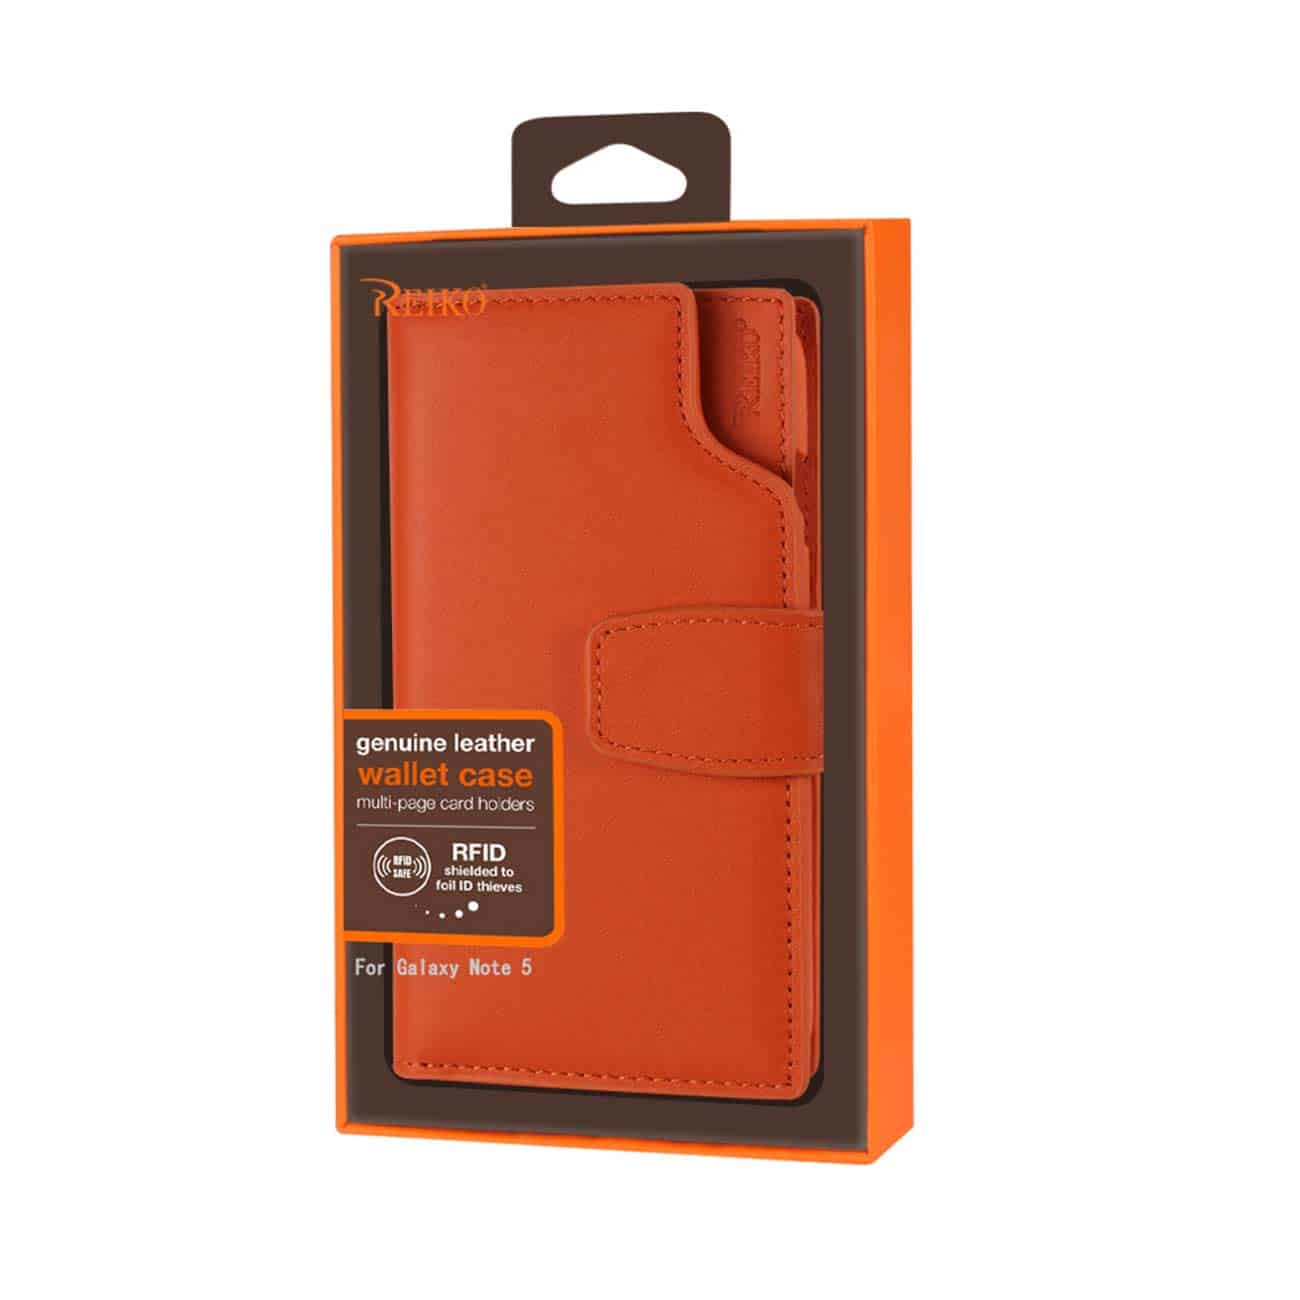 SAMSUNG GALAXY NOTE 5 GENUINE LEATHER WALLET CASE WITH OPEN THUMB CUT IN TANGERINE